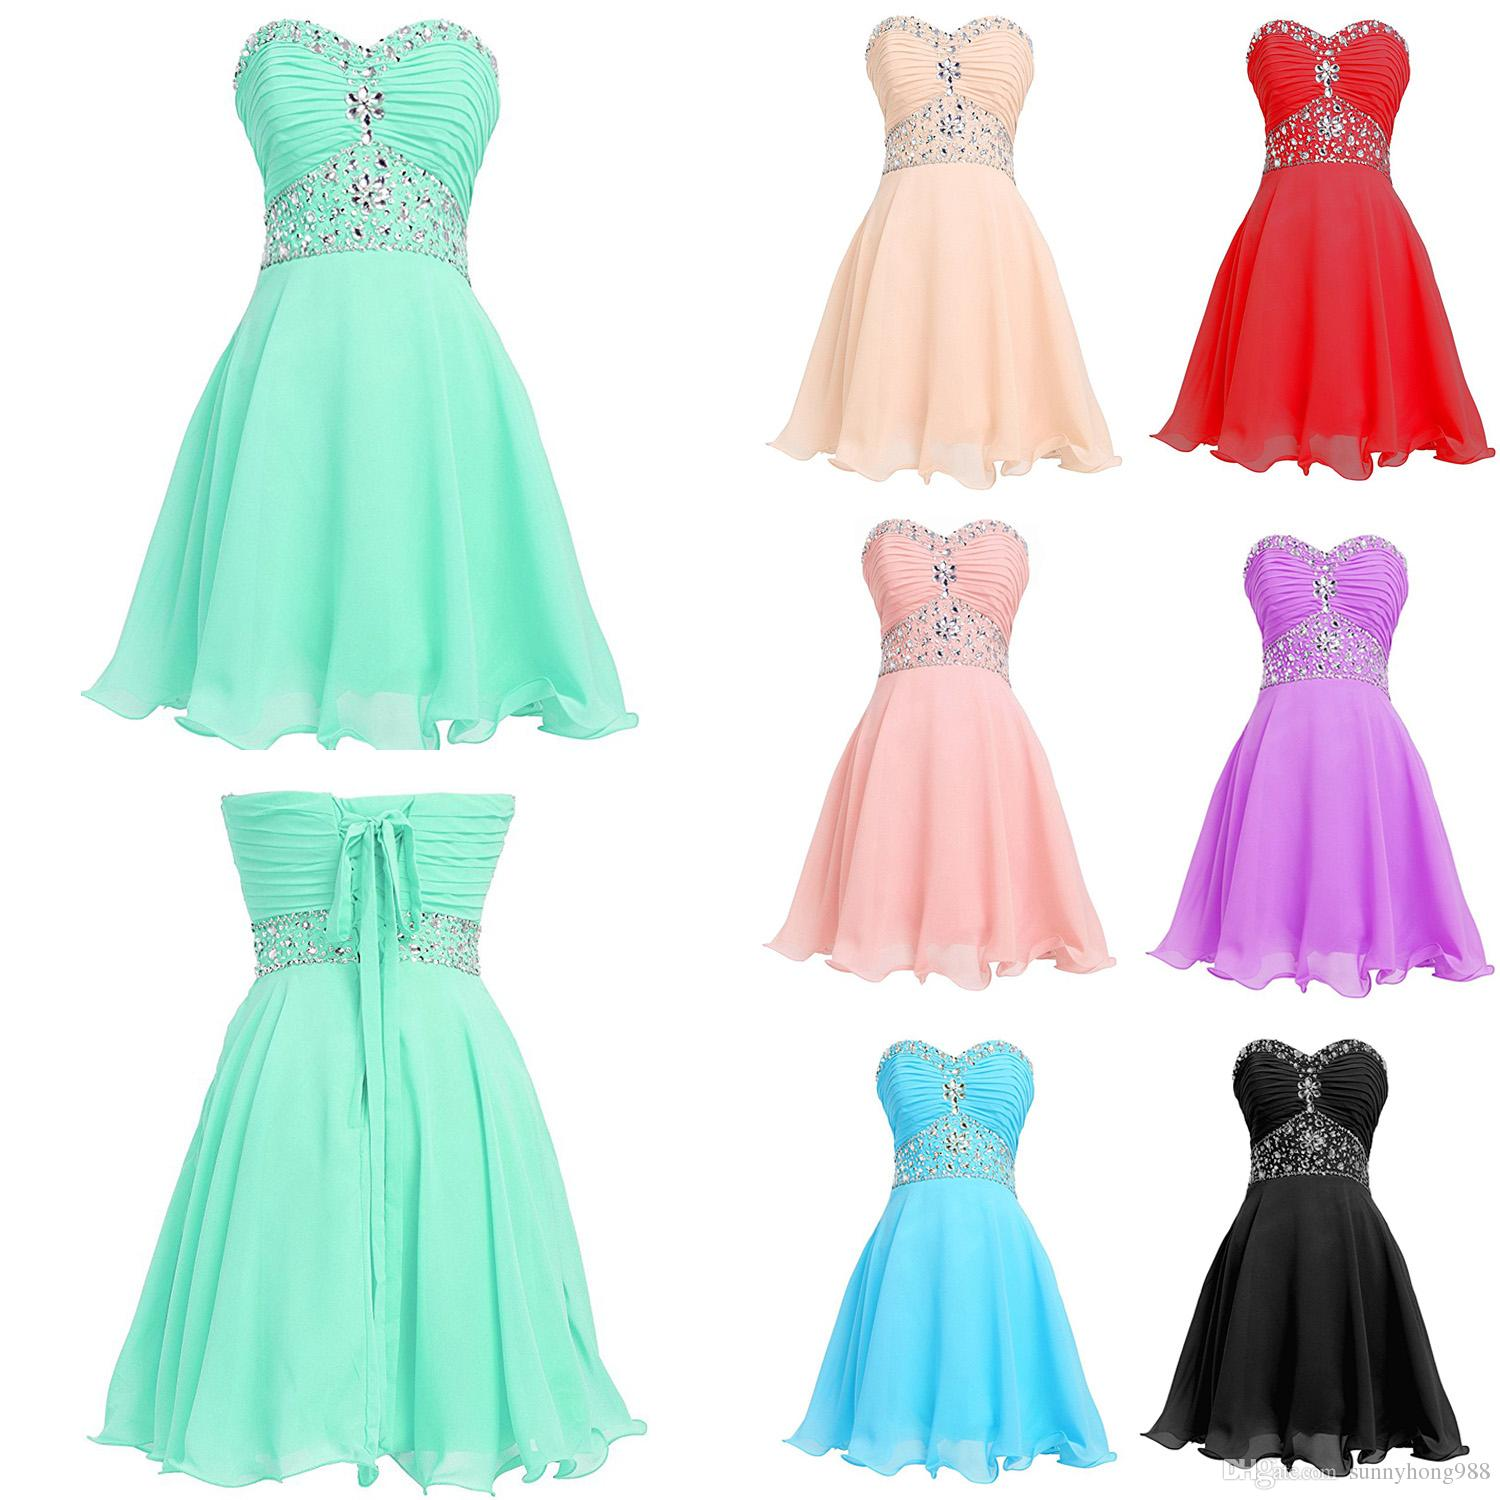 96daa4e8001 New Arrival Mint Green Chiffon Beaded Ruched Short Homecoming Dress Plus  Size Junior Sweet 16 Prom Gowns 2019 Ruffle Girls Cocktail Gowns Semi  Dresses White ...